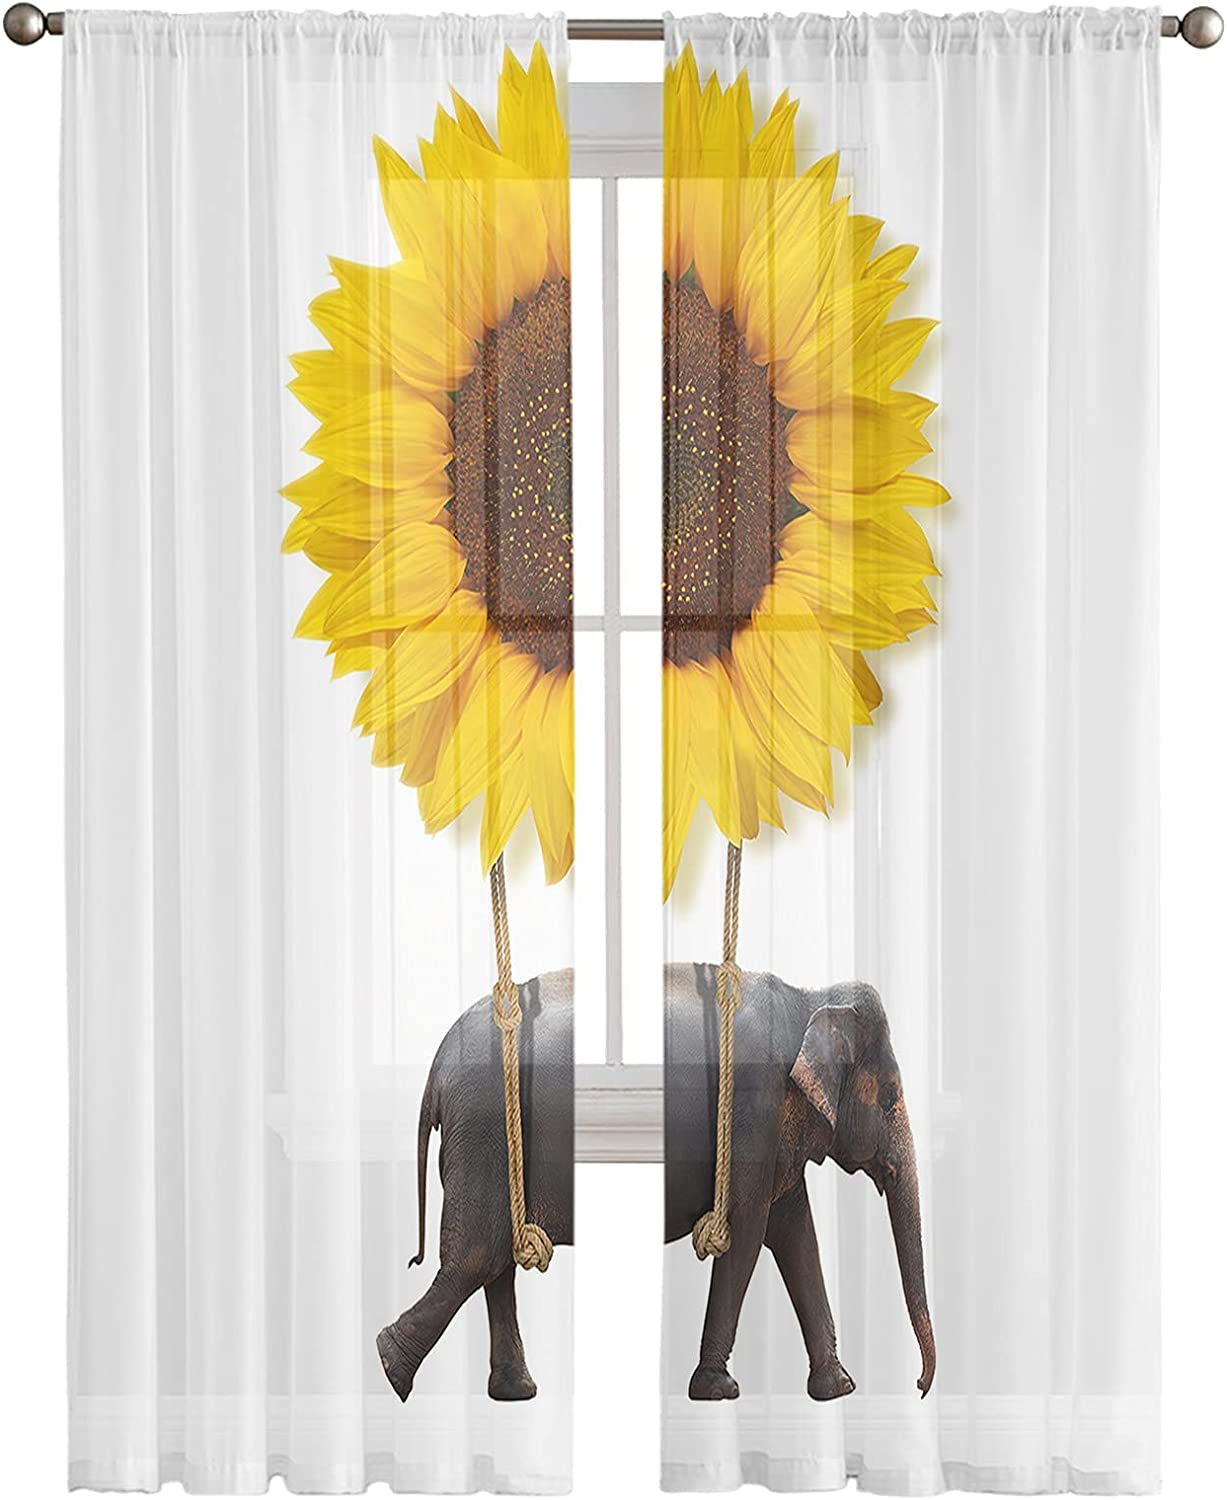 Baltimore Mall Semi Sheer Window Curtains Funny Poc Sunflower shopping Elephant with Rod